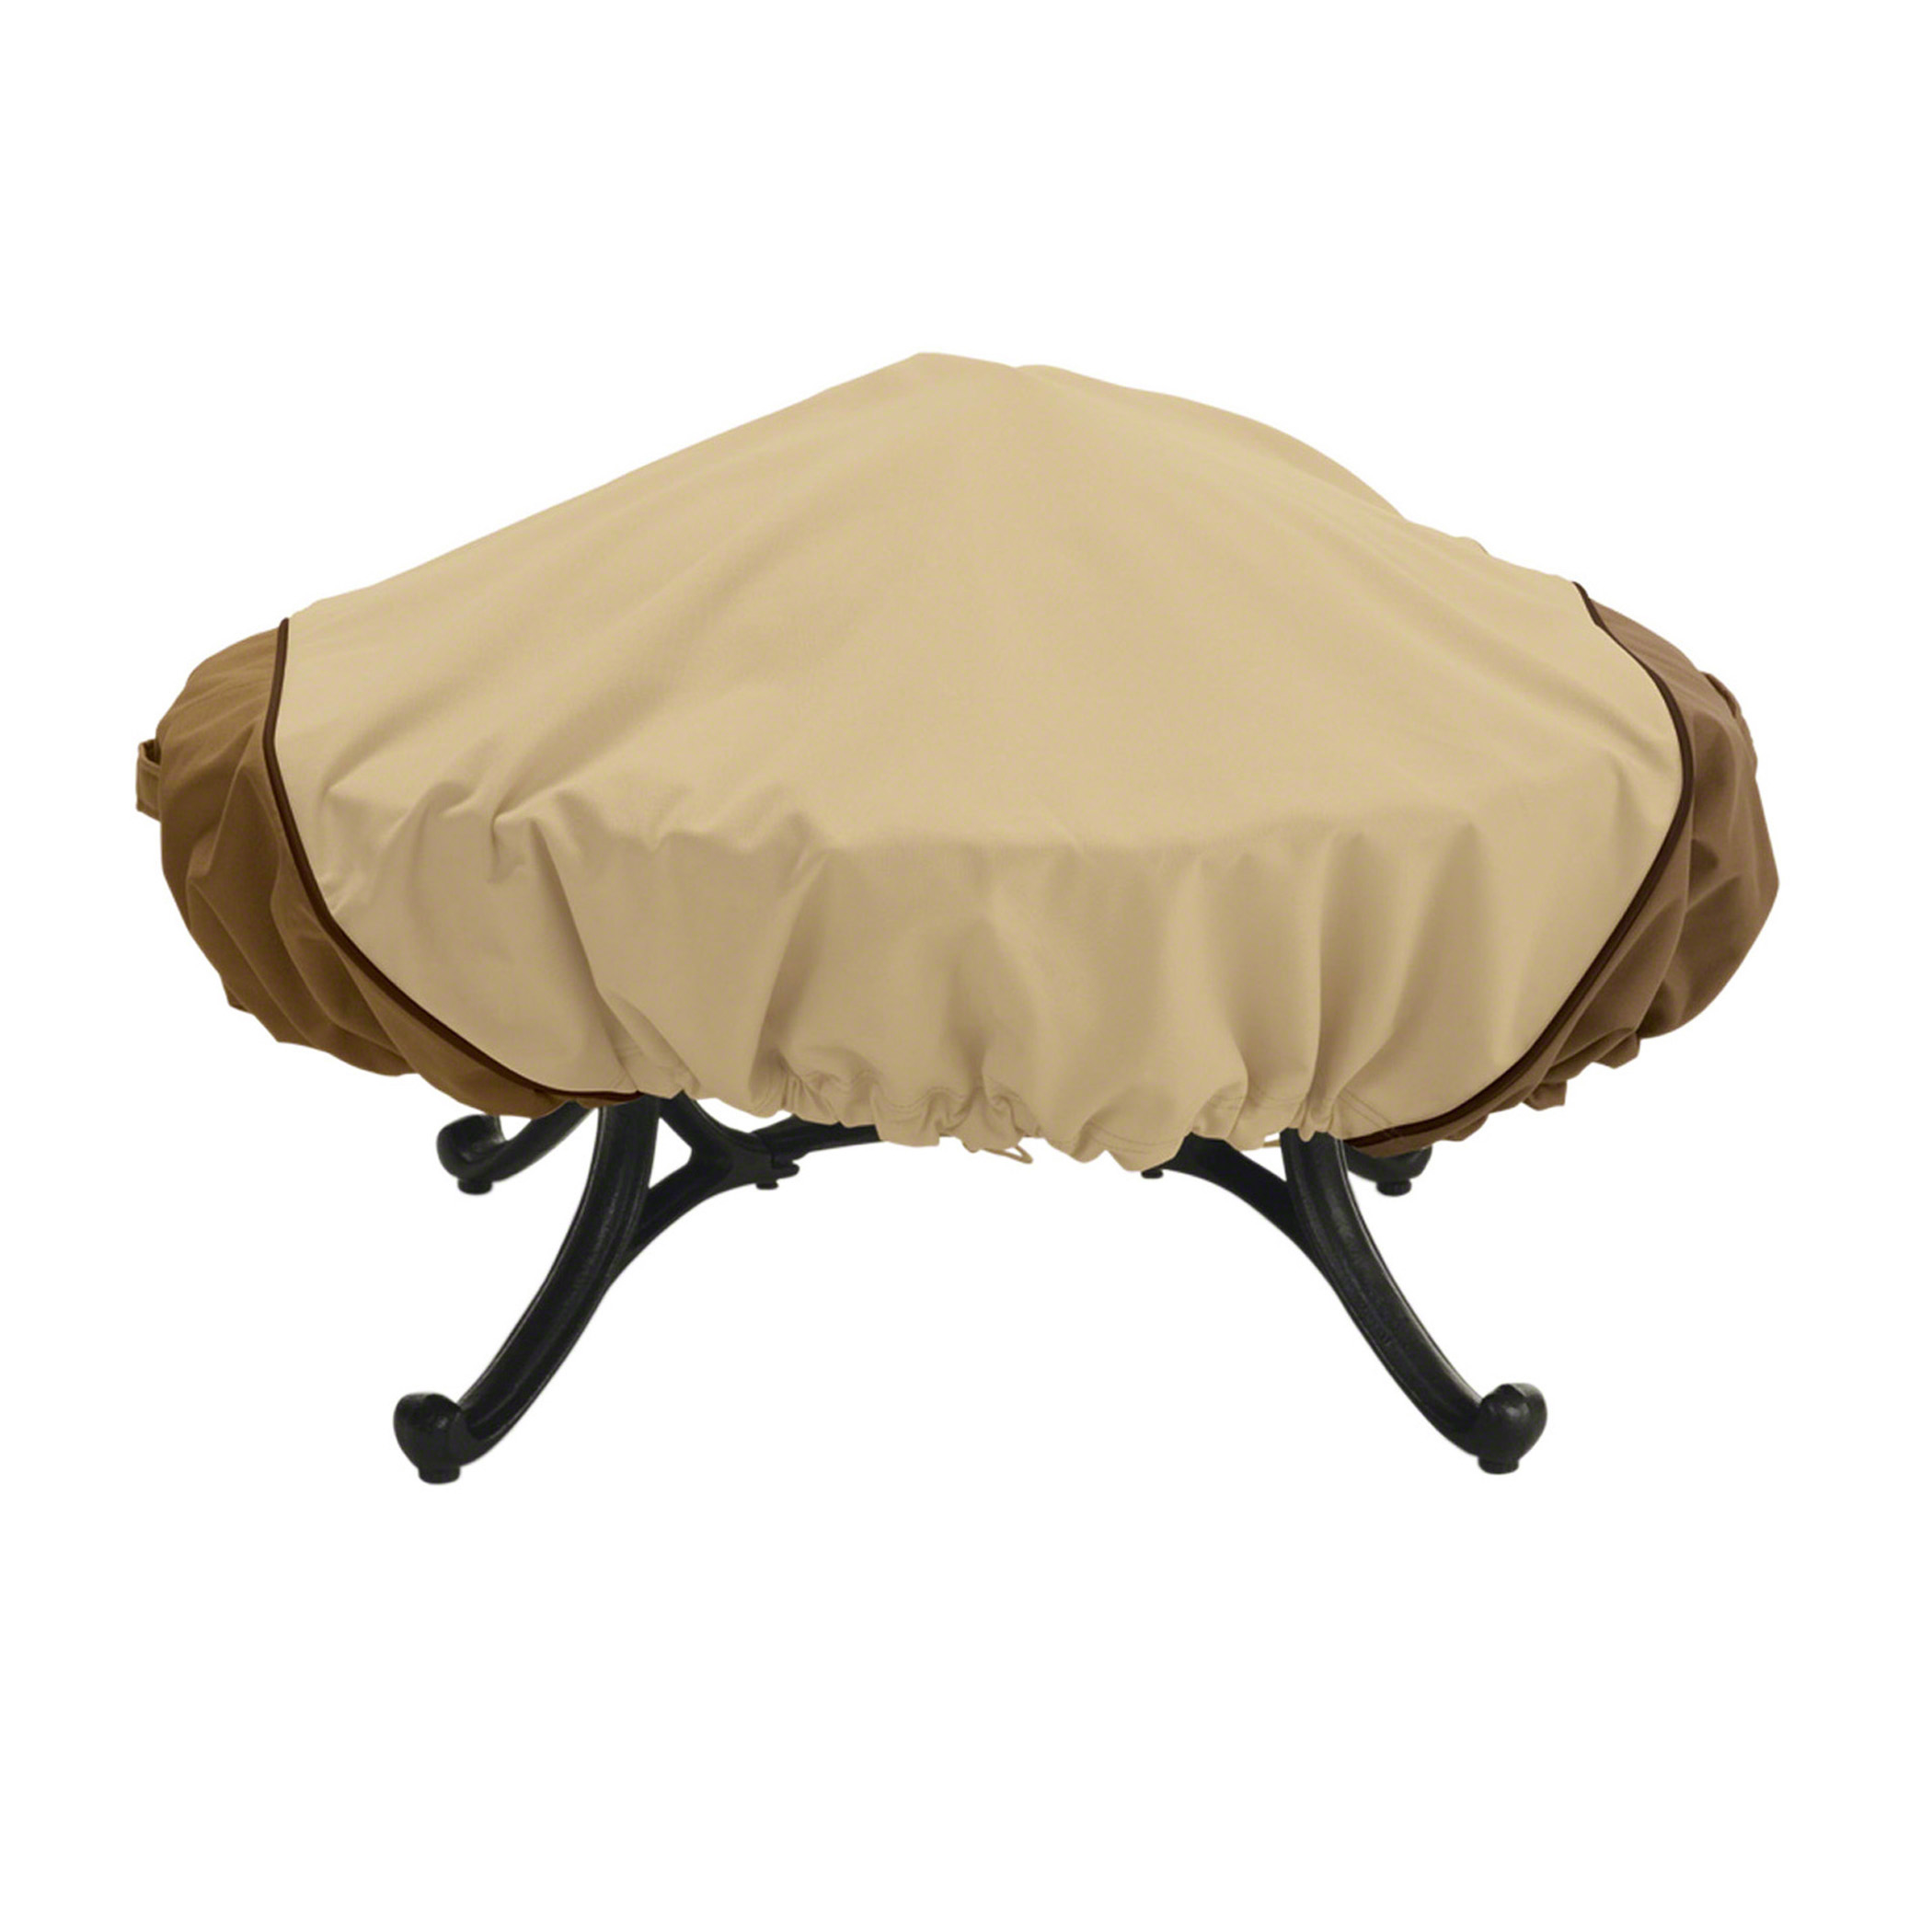 Classic Accessories Veranda Patio Lounge Chair/Club Chair Cover   Durable  And Water Resistant Outdoor Furniture Cover, Large (70912)   Walmart.com